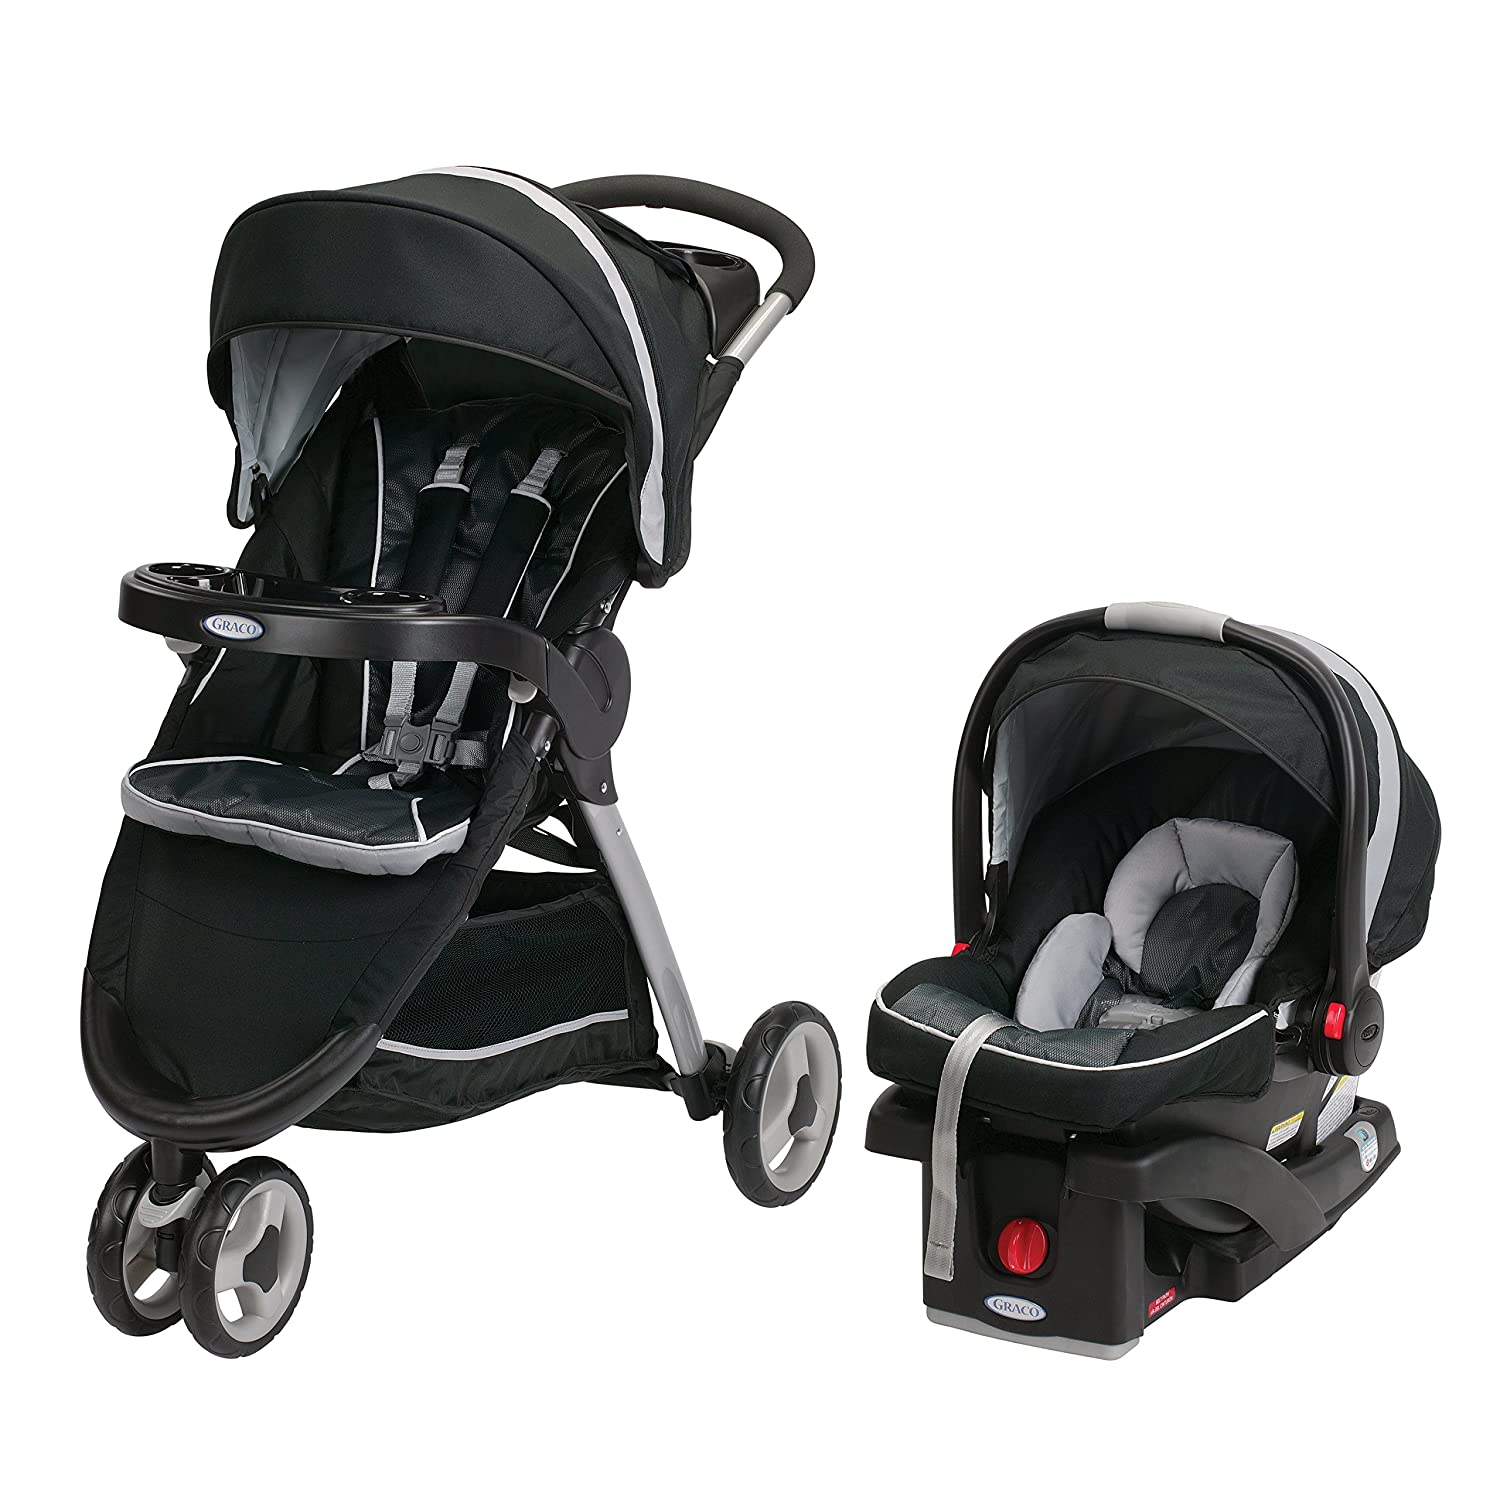 Graco Fastaction Fold Sport Click Connect Travel System Stroller, Gotham, One Size 1934806